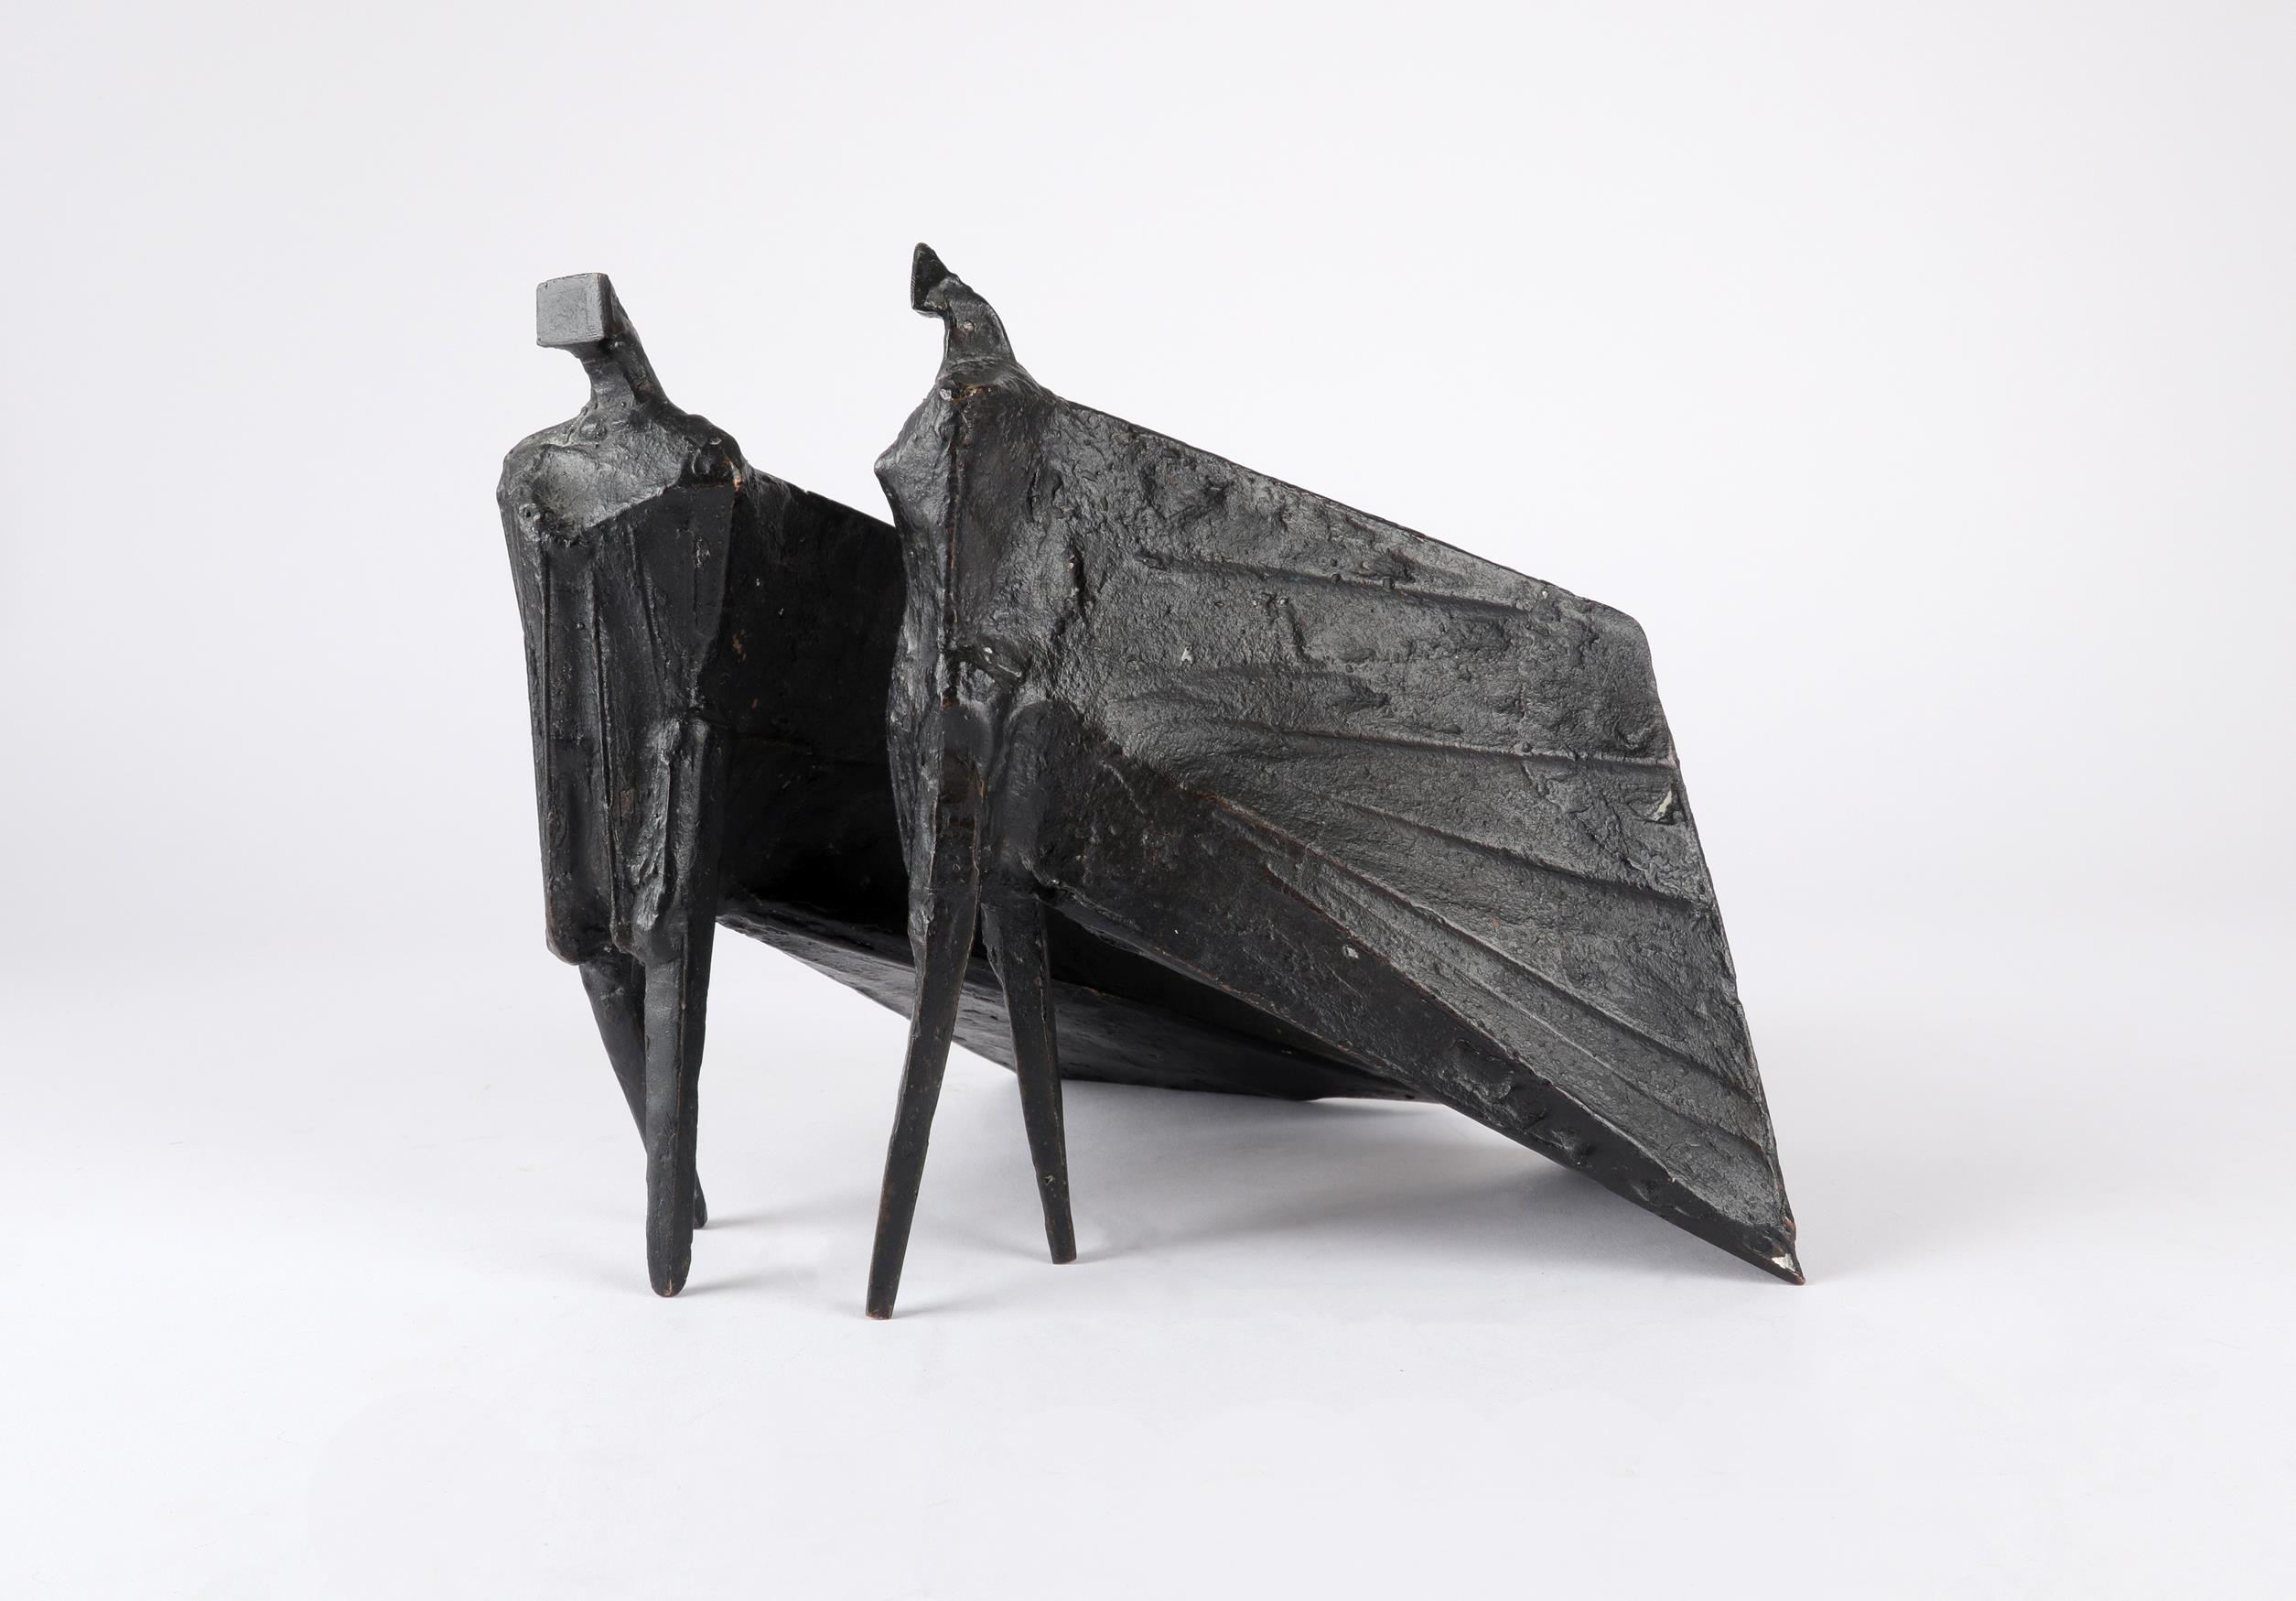 ‡Lynn Chadwick CBE, RA (1914-2003) Pair of Cloaked Figures III Each signed dated and numbered C/77/ - Image 18 of 22